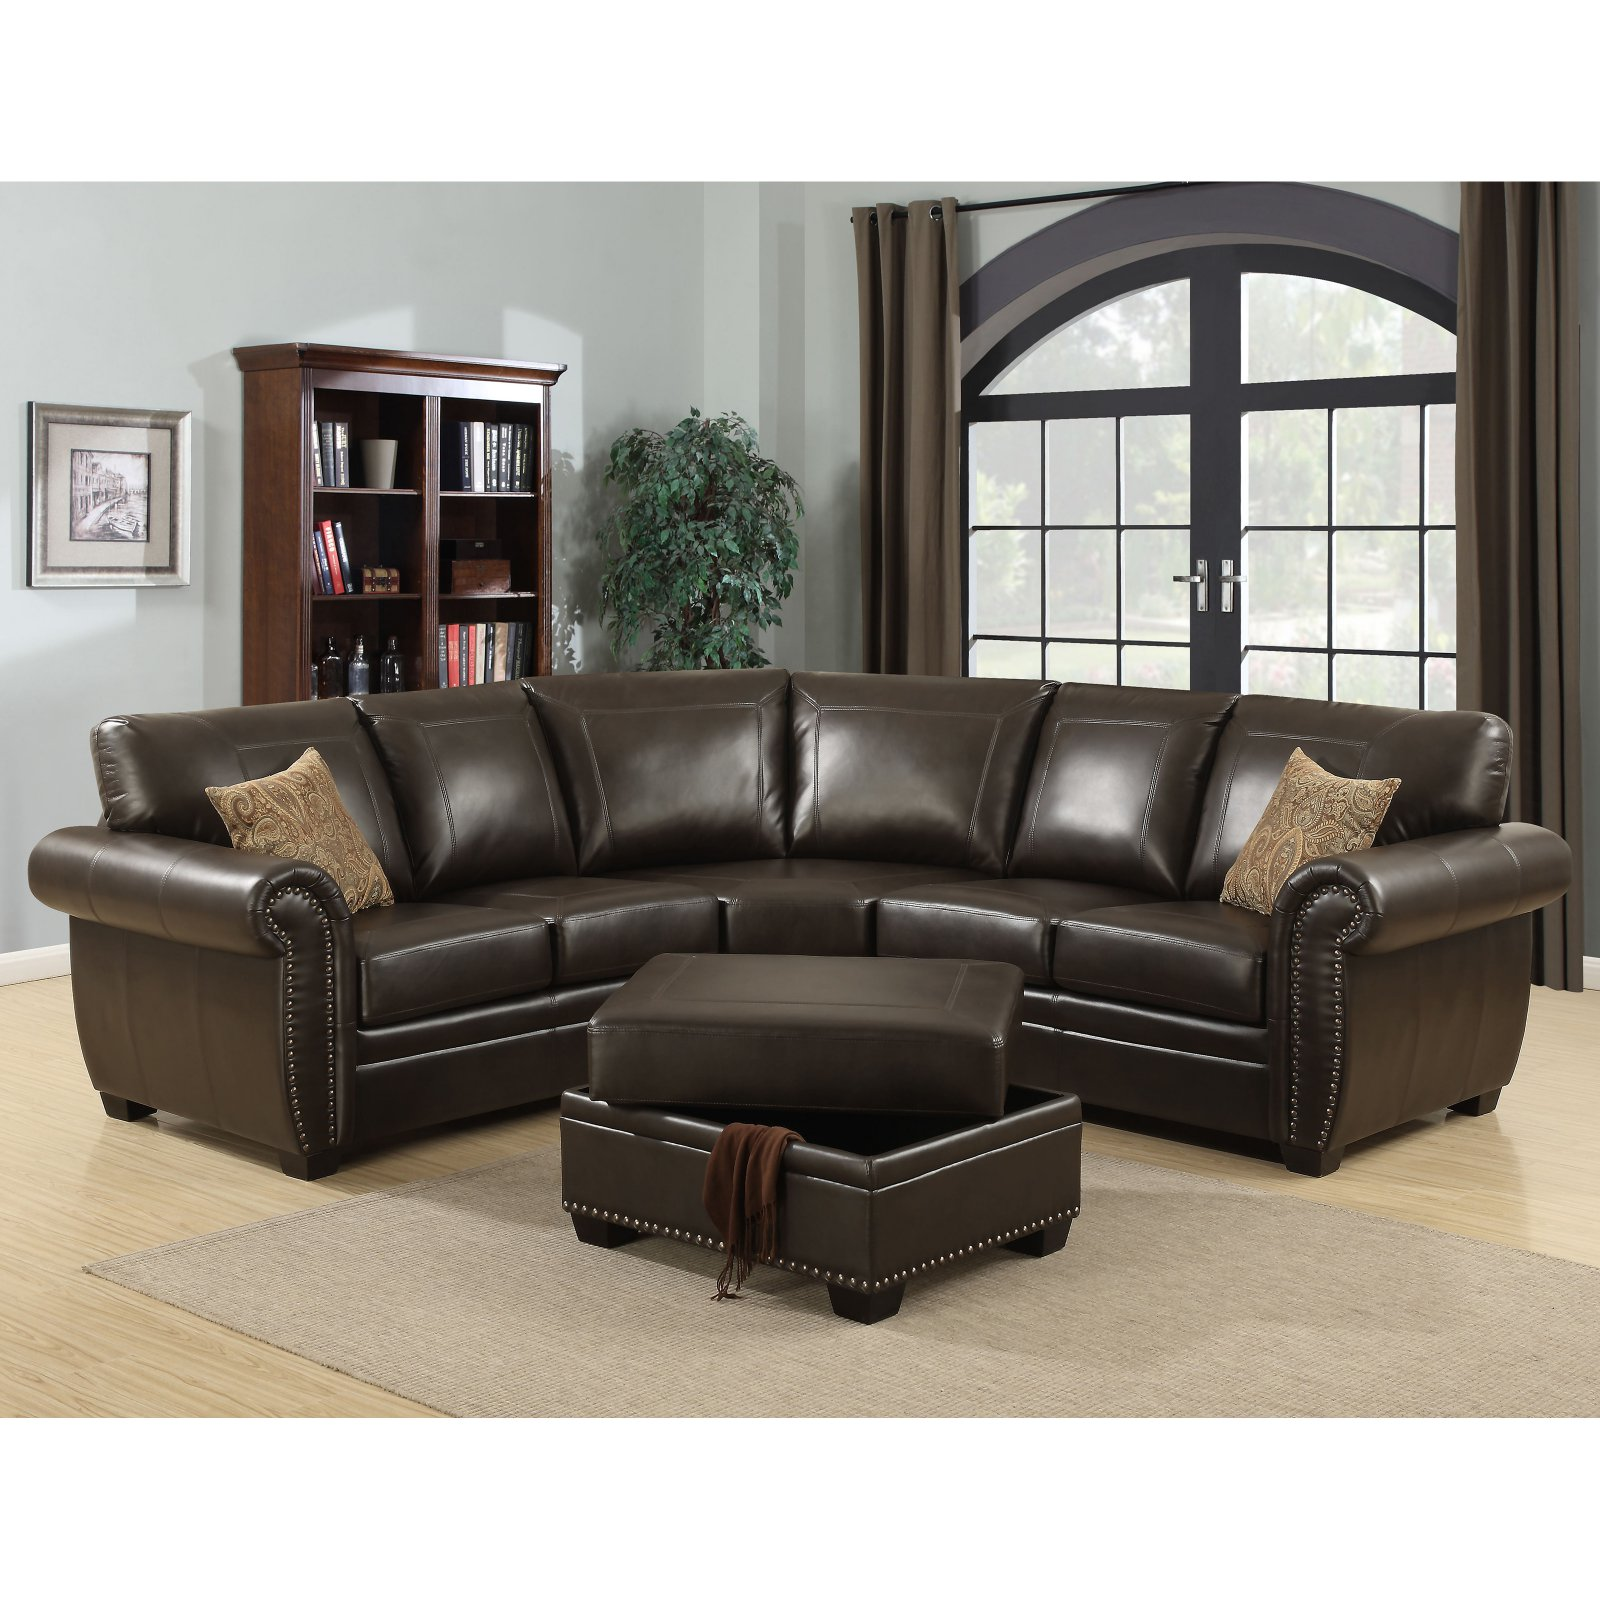 Christies Home Living Louis Collection 3 Piece Living Room Sectional